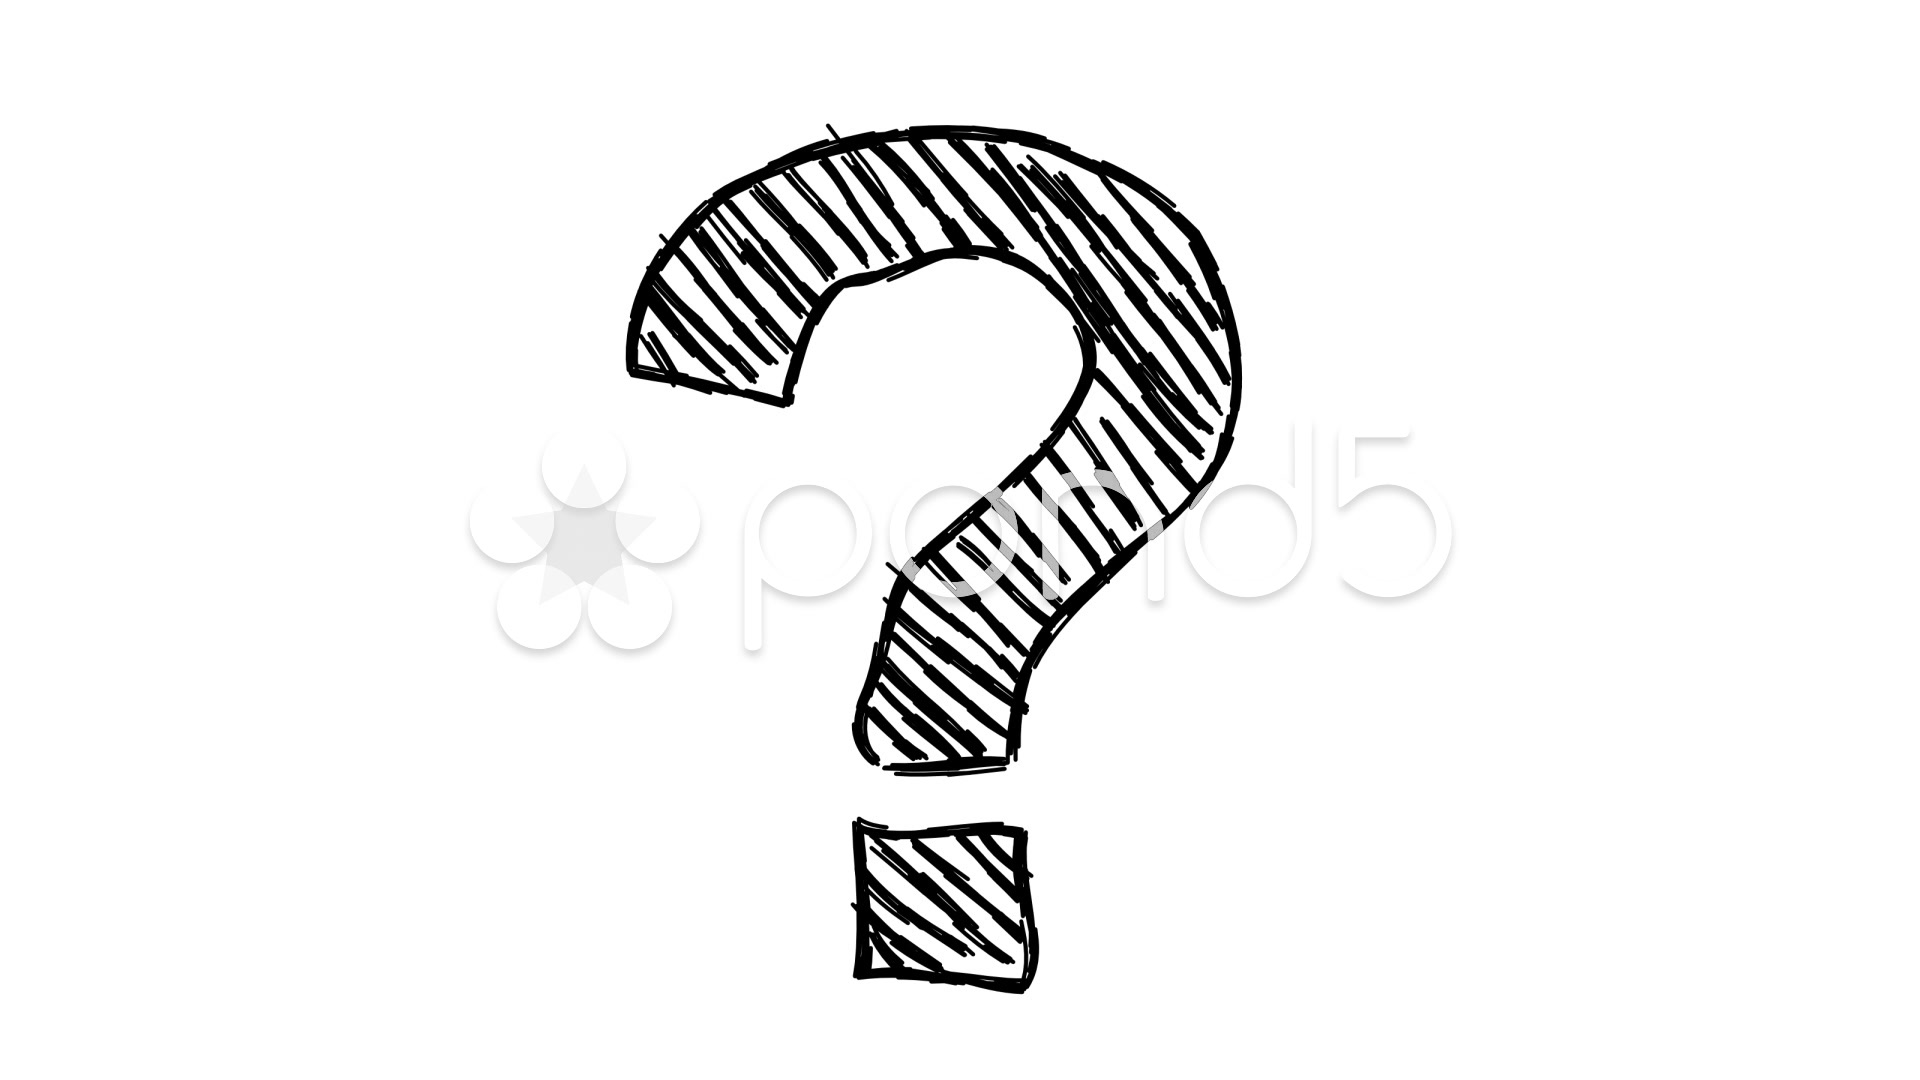 Video Animated Cartoon Doodle Question Mark